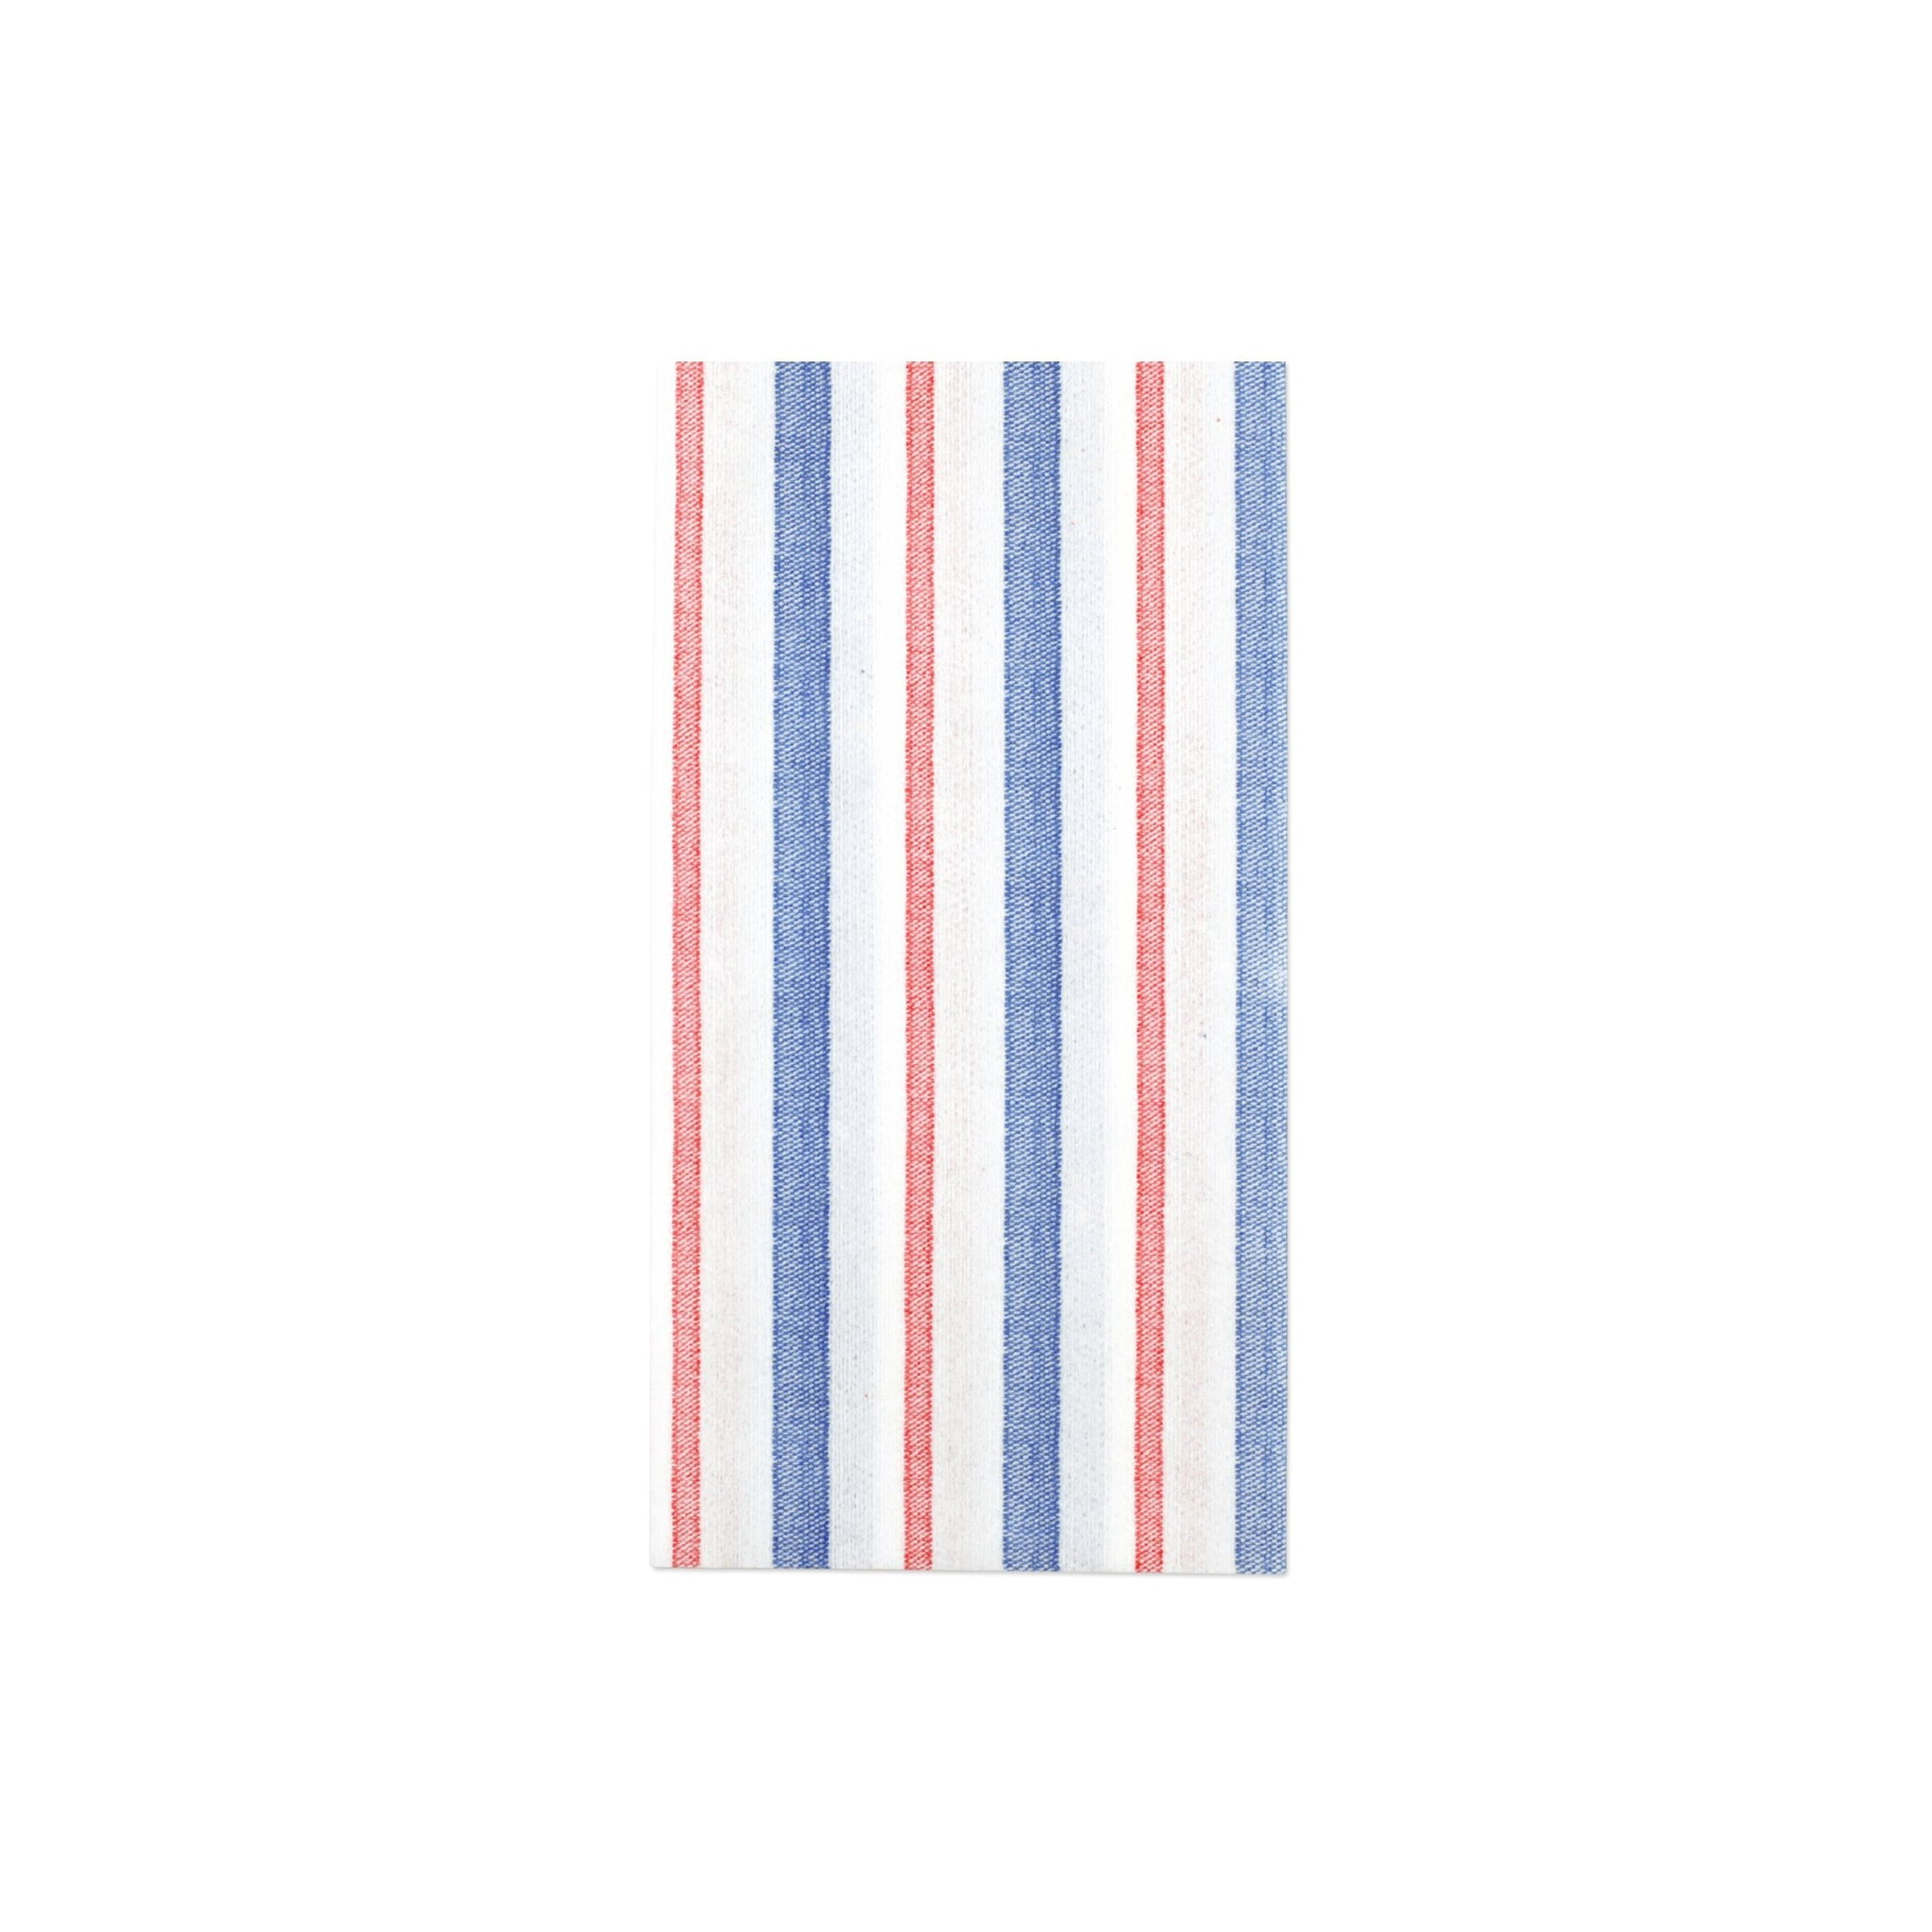 Papersoft Napkins Americana Stripe Guest Towels (Pack of 50)